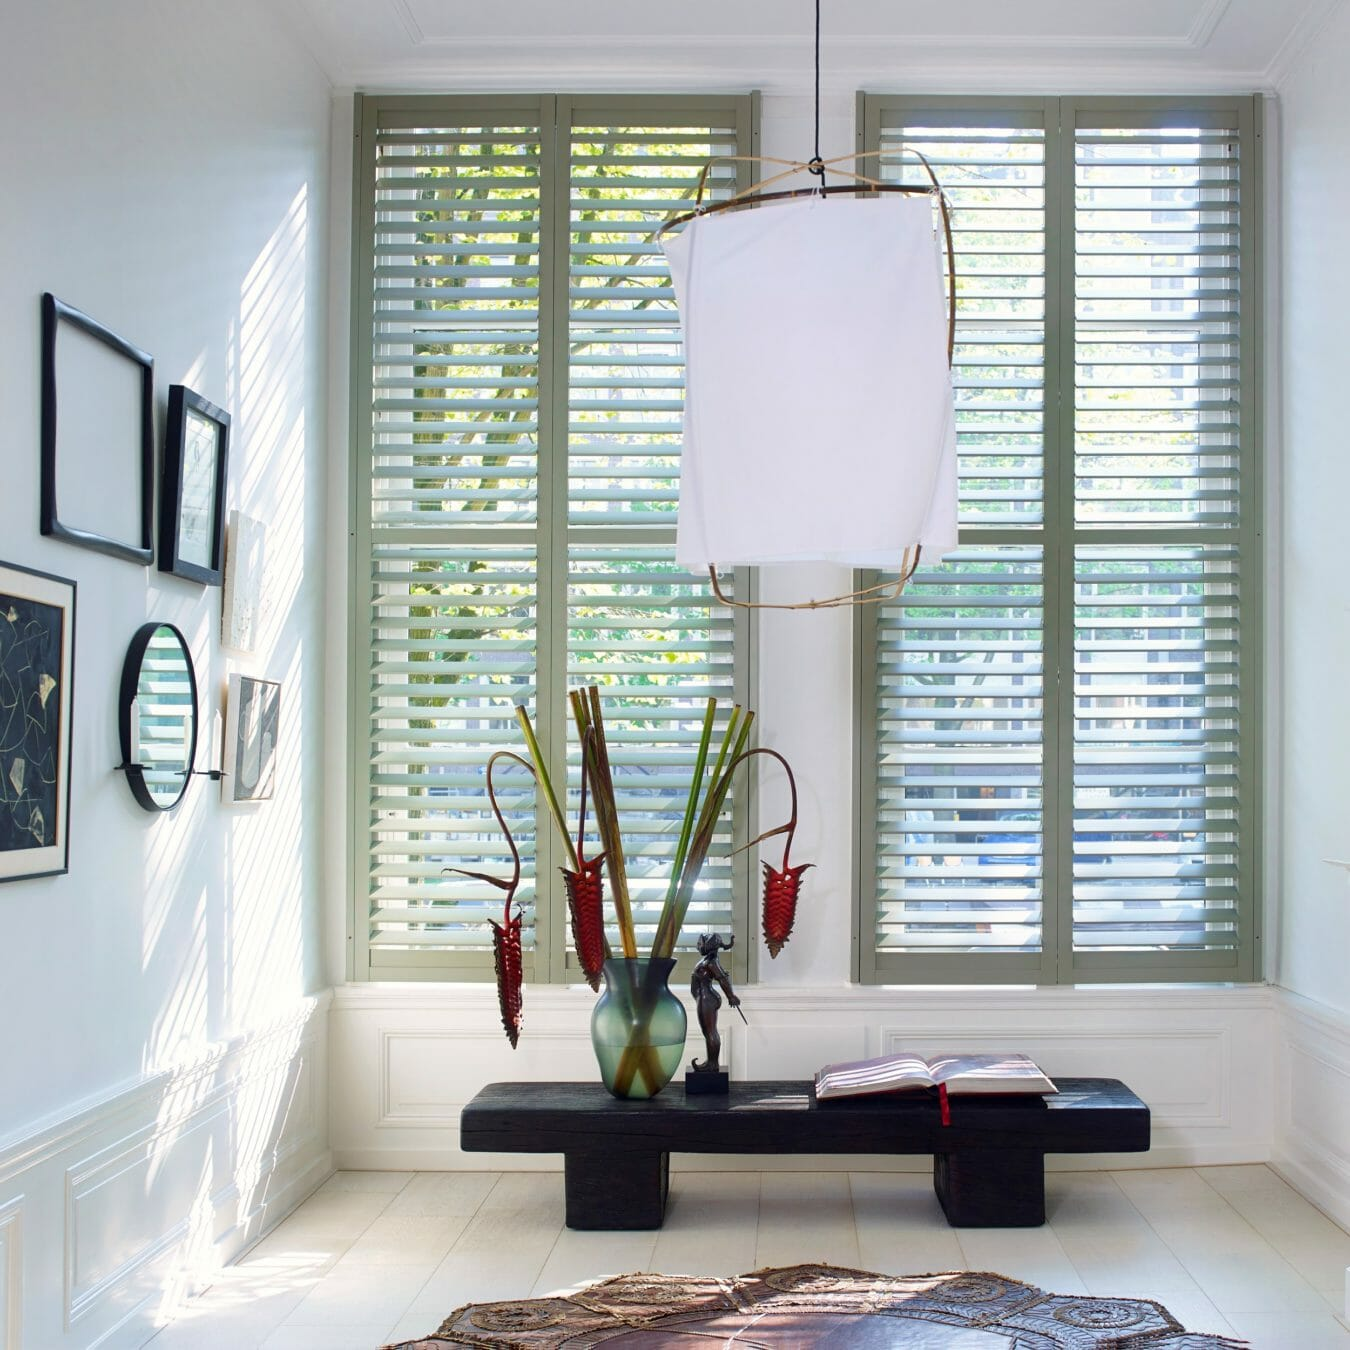 Piet Boon shutters by Zonnelux